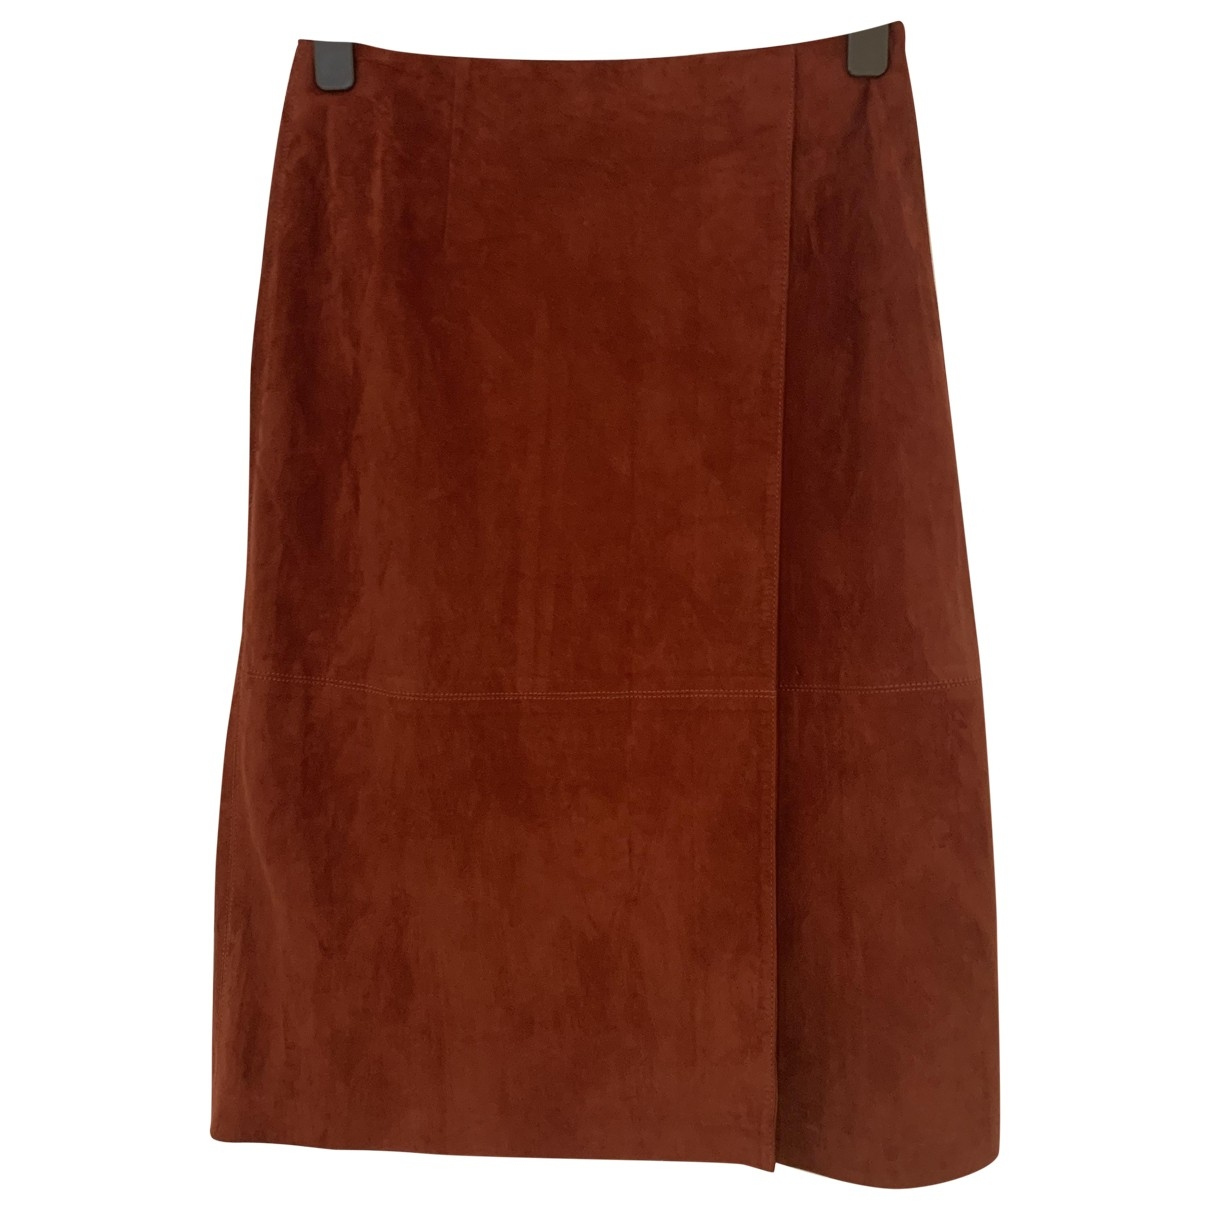 Lk Bennett \N Burgundy Suede skirt for Women 12 UK